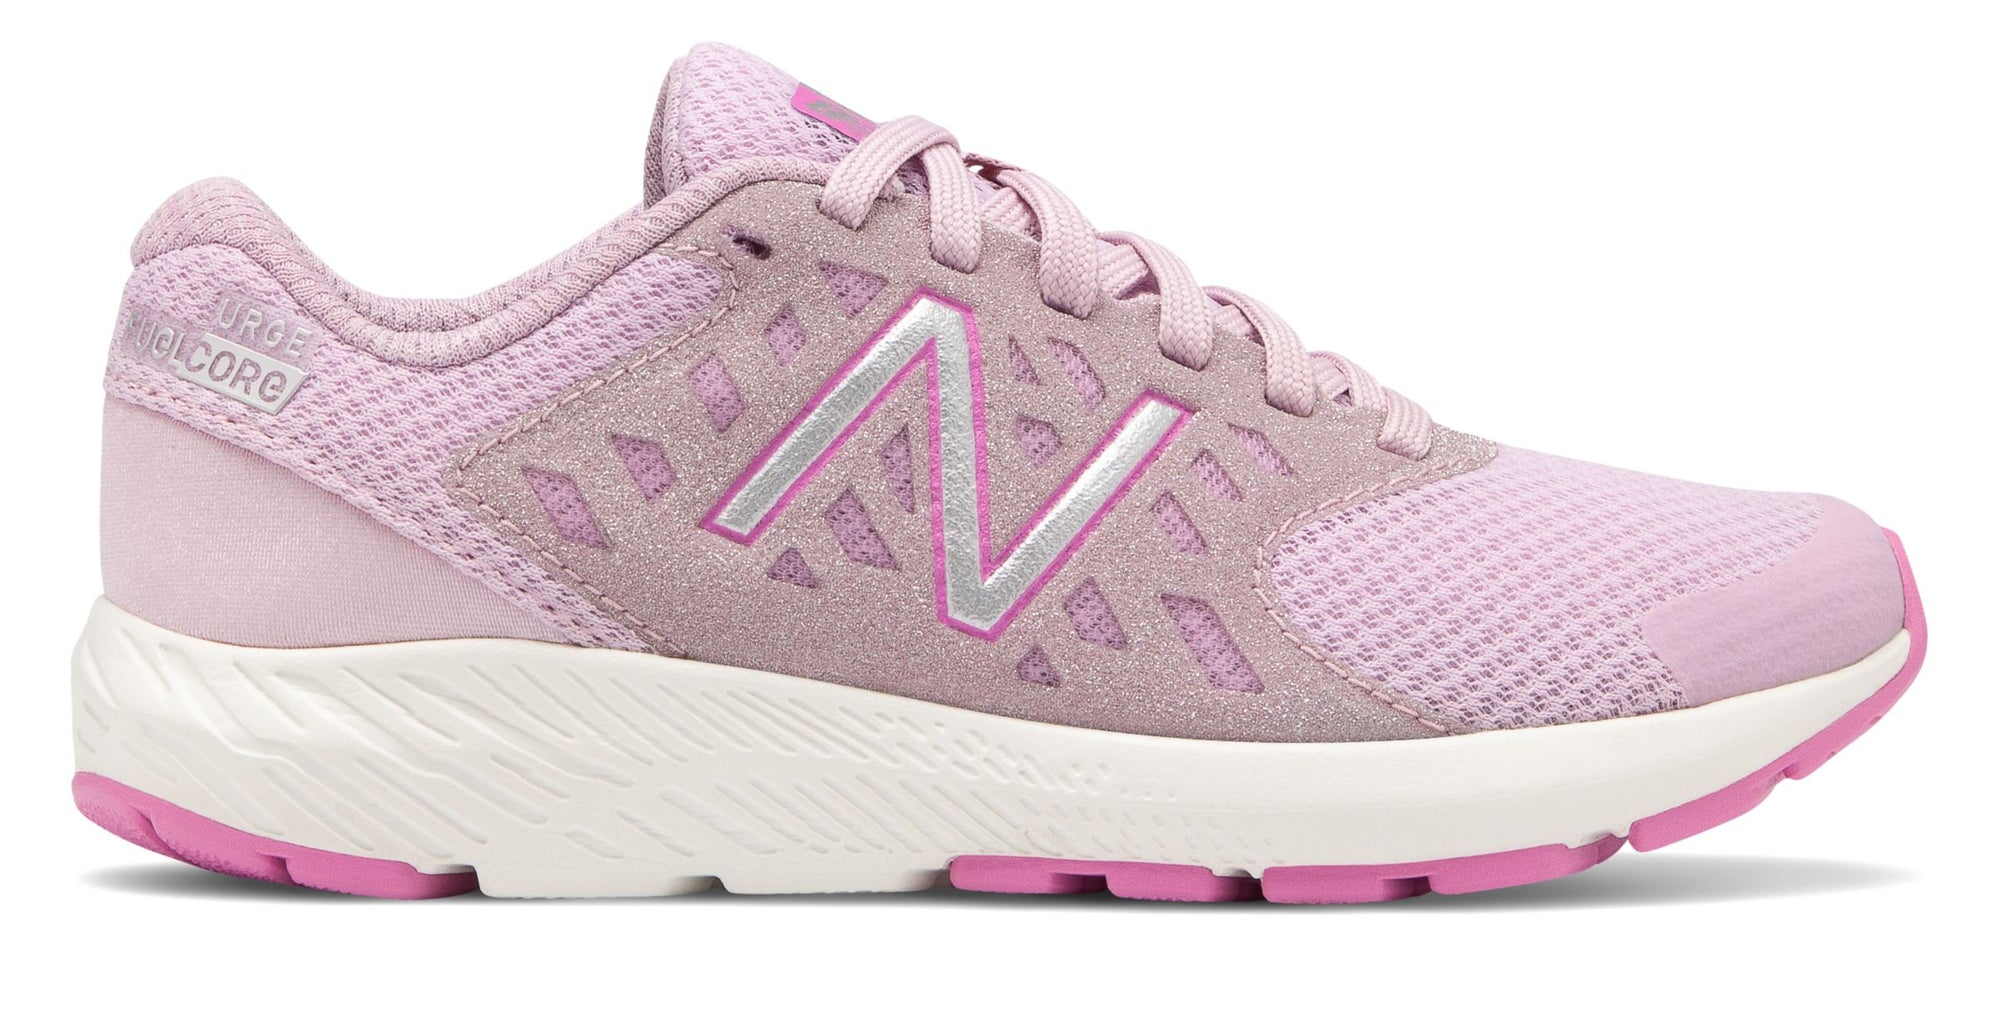 FuelCore Urge - Oxygen Pink / Carnival by New Balance - Ponseti's Shoes